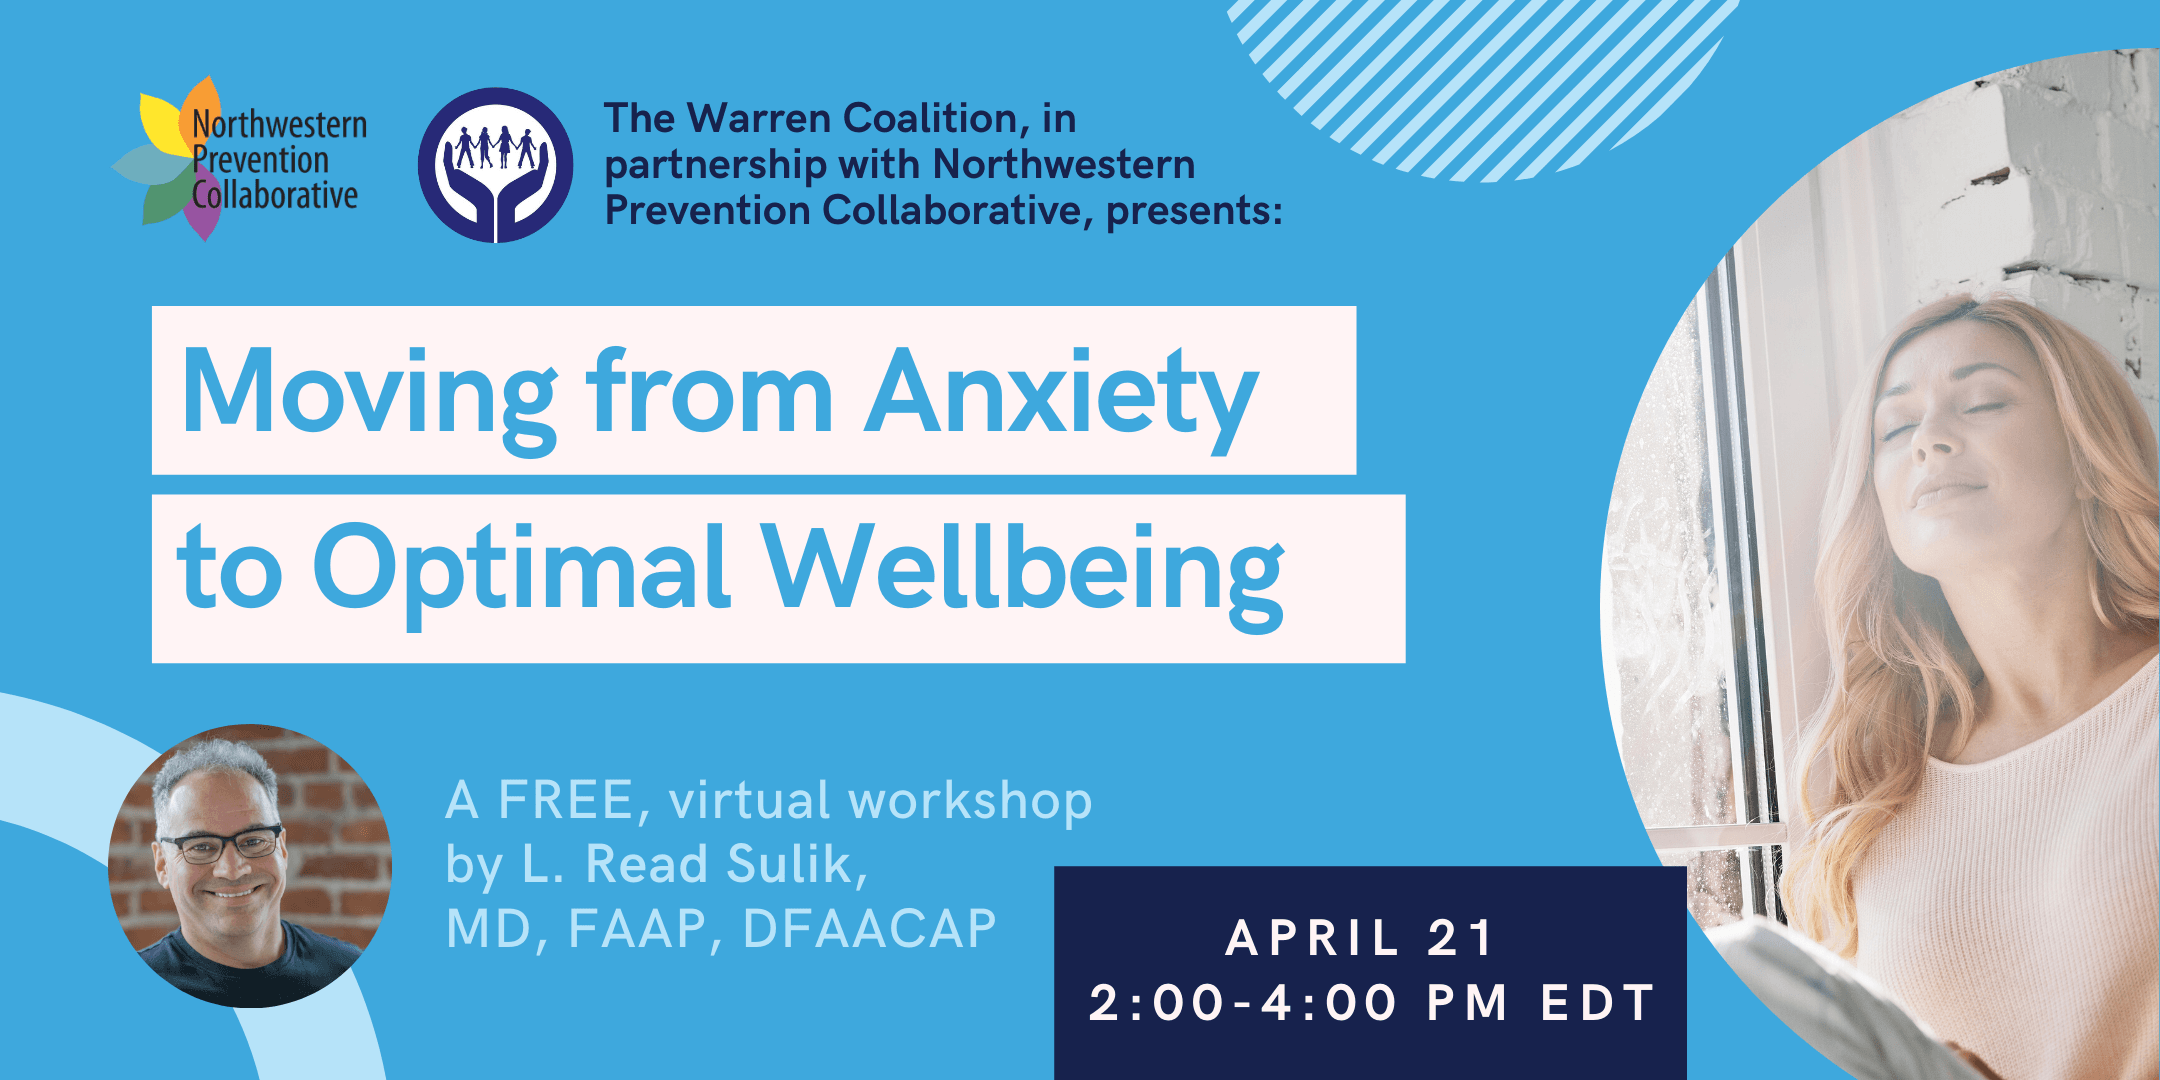 Eventbrite Cover for Anxiety Presentation